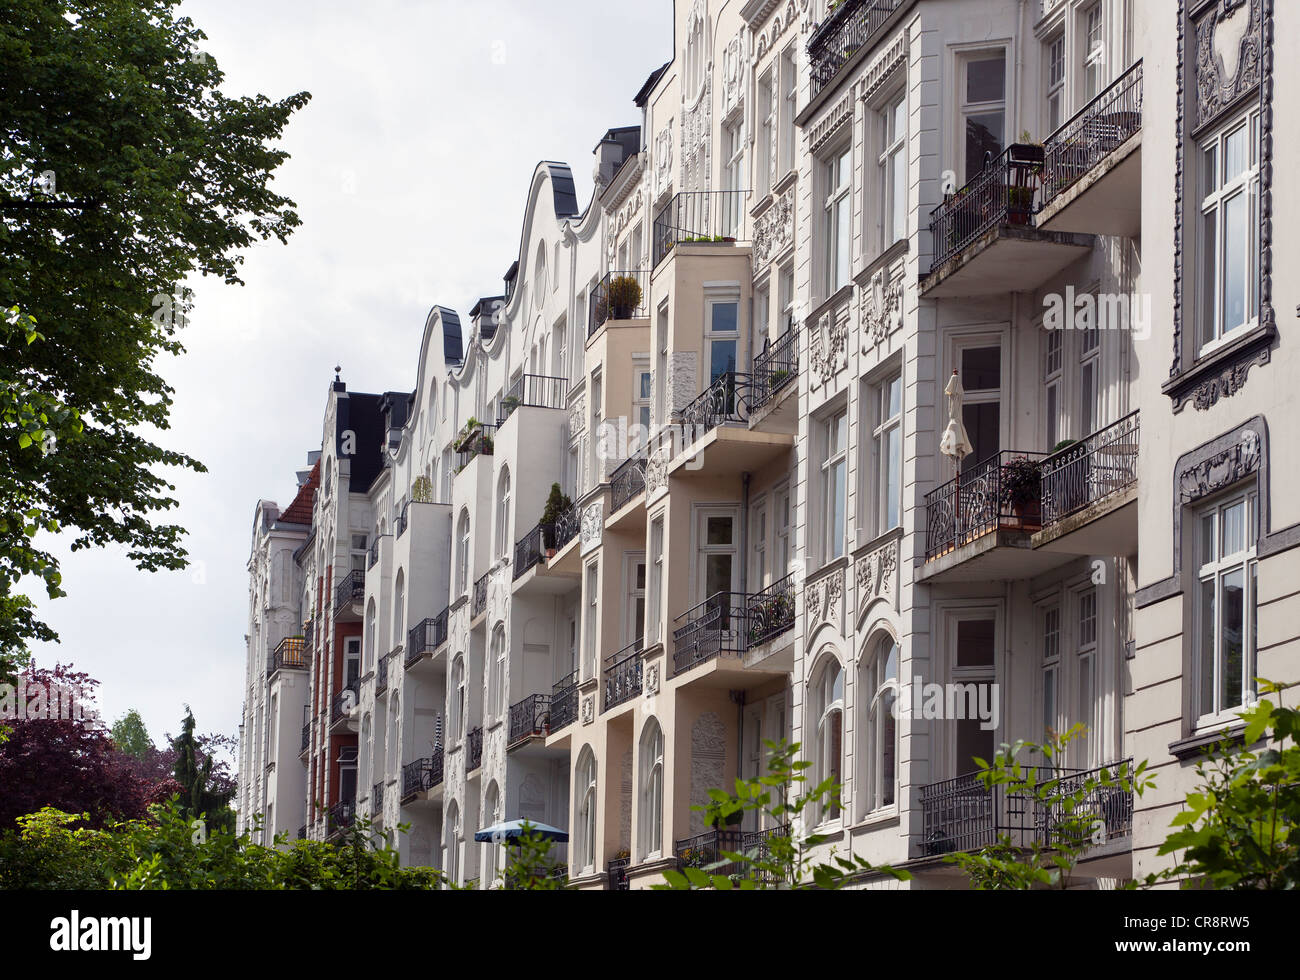 House facades in the posh Eppendorf district, Hamburg, Germany, Europe - Stock Image